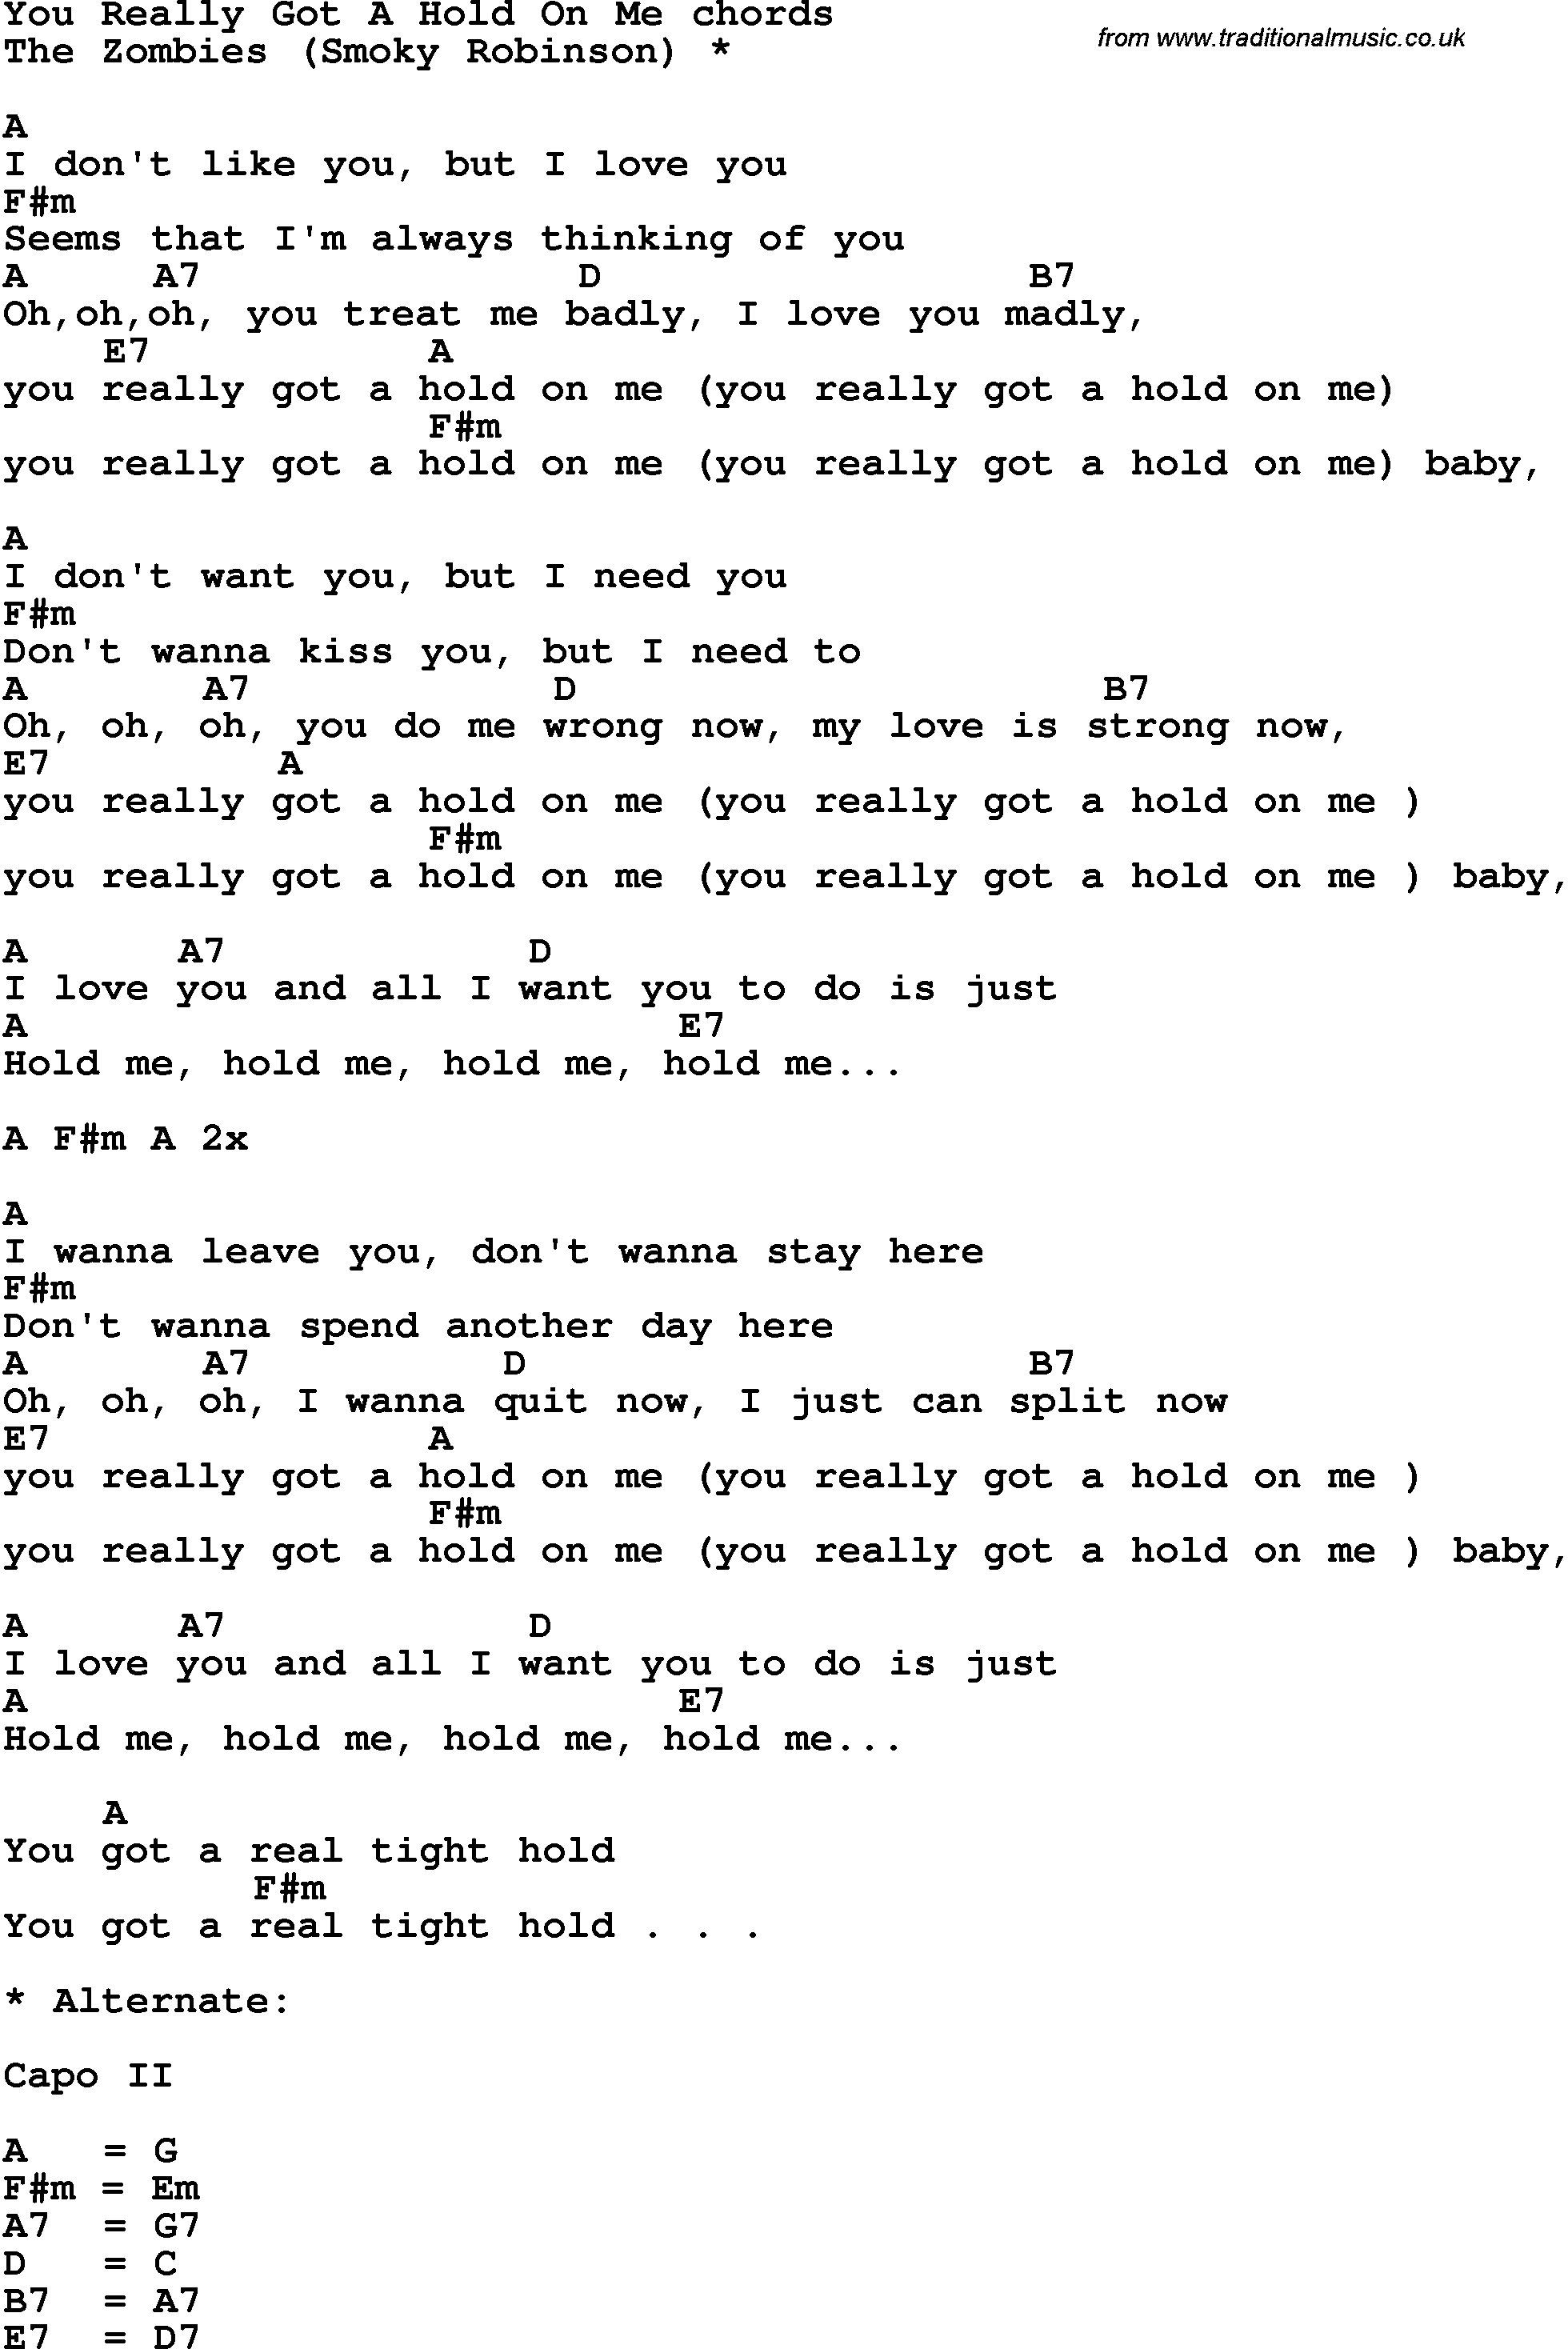 Song lyrics with guitar chords for You Really Got A Hold On Me - Zombies